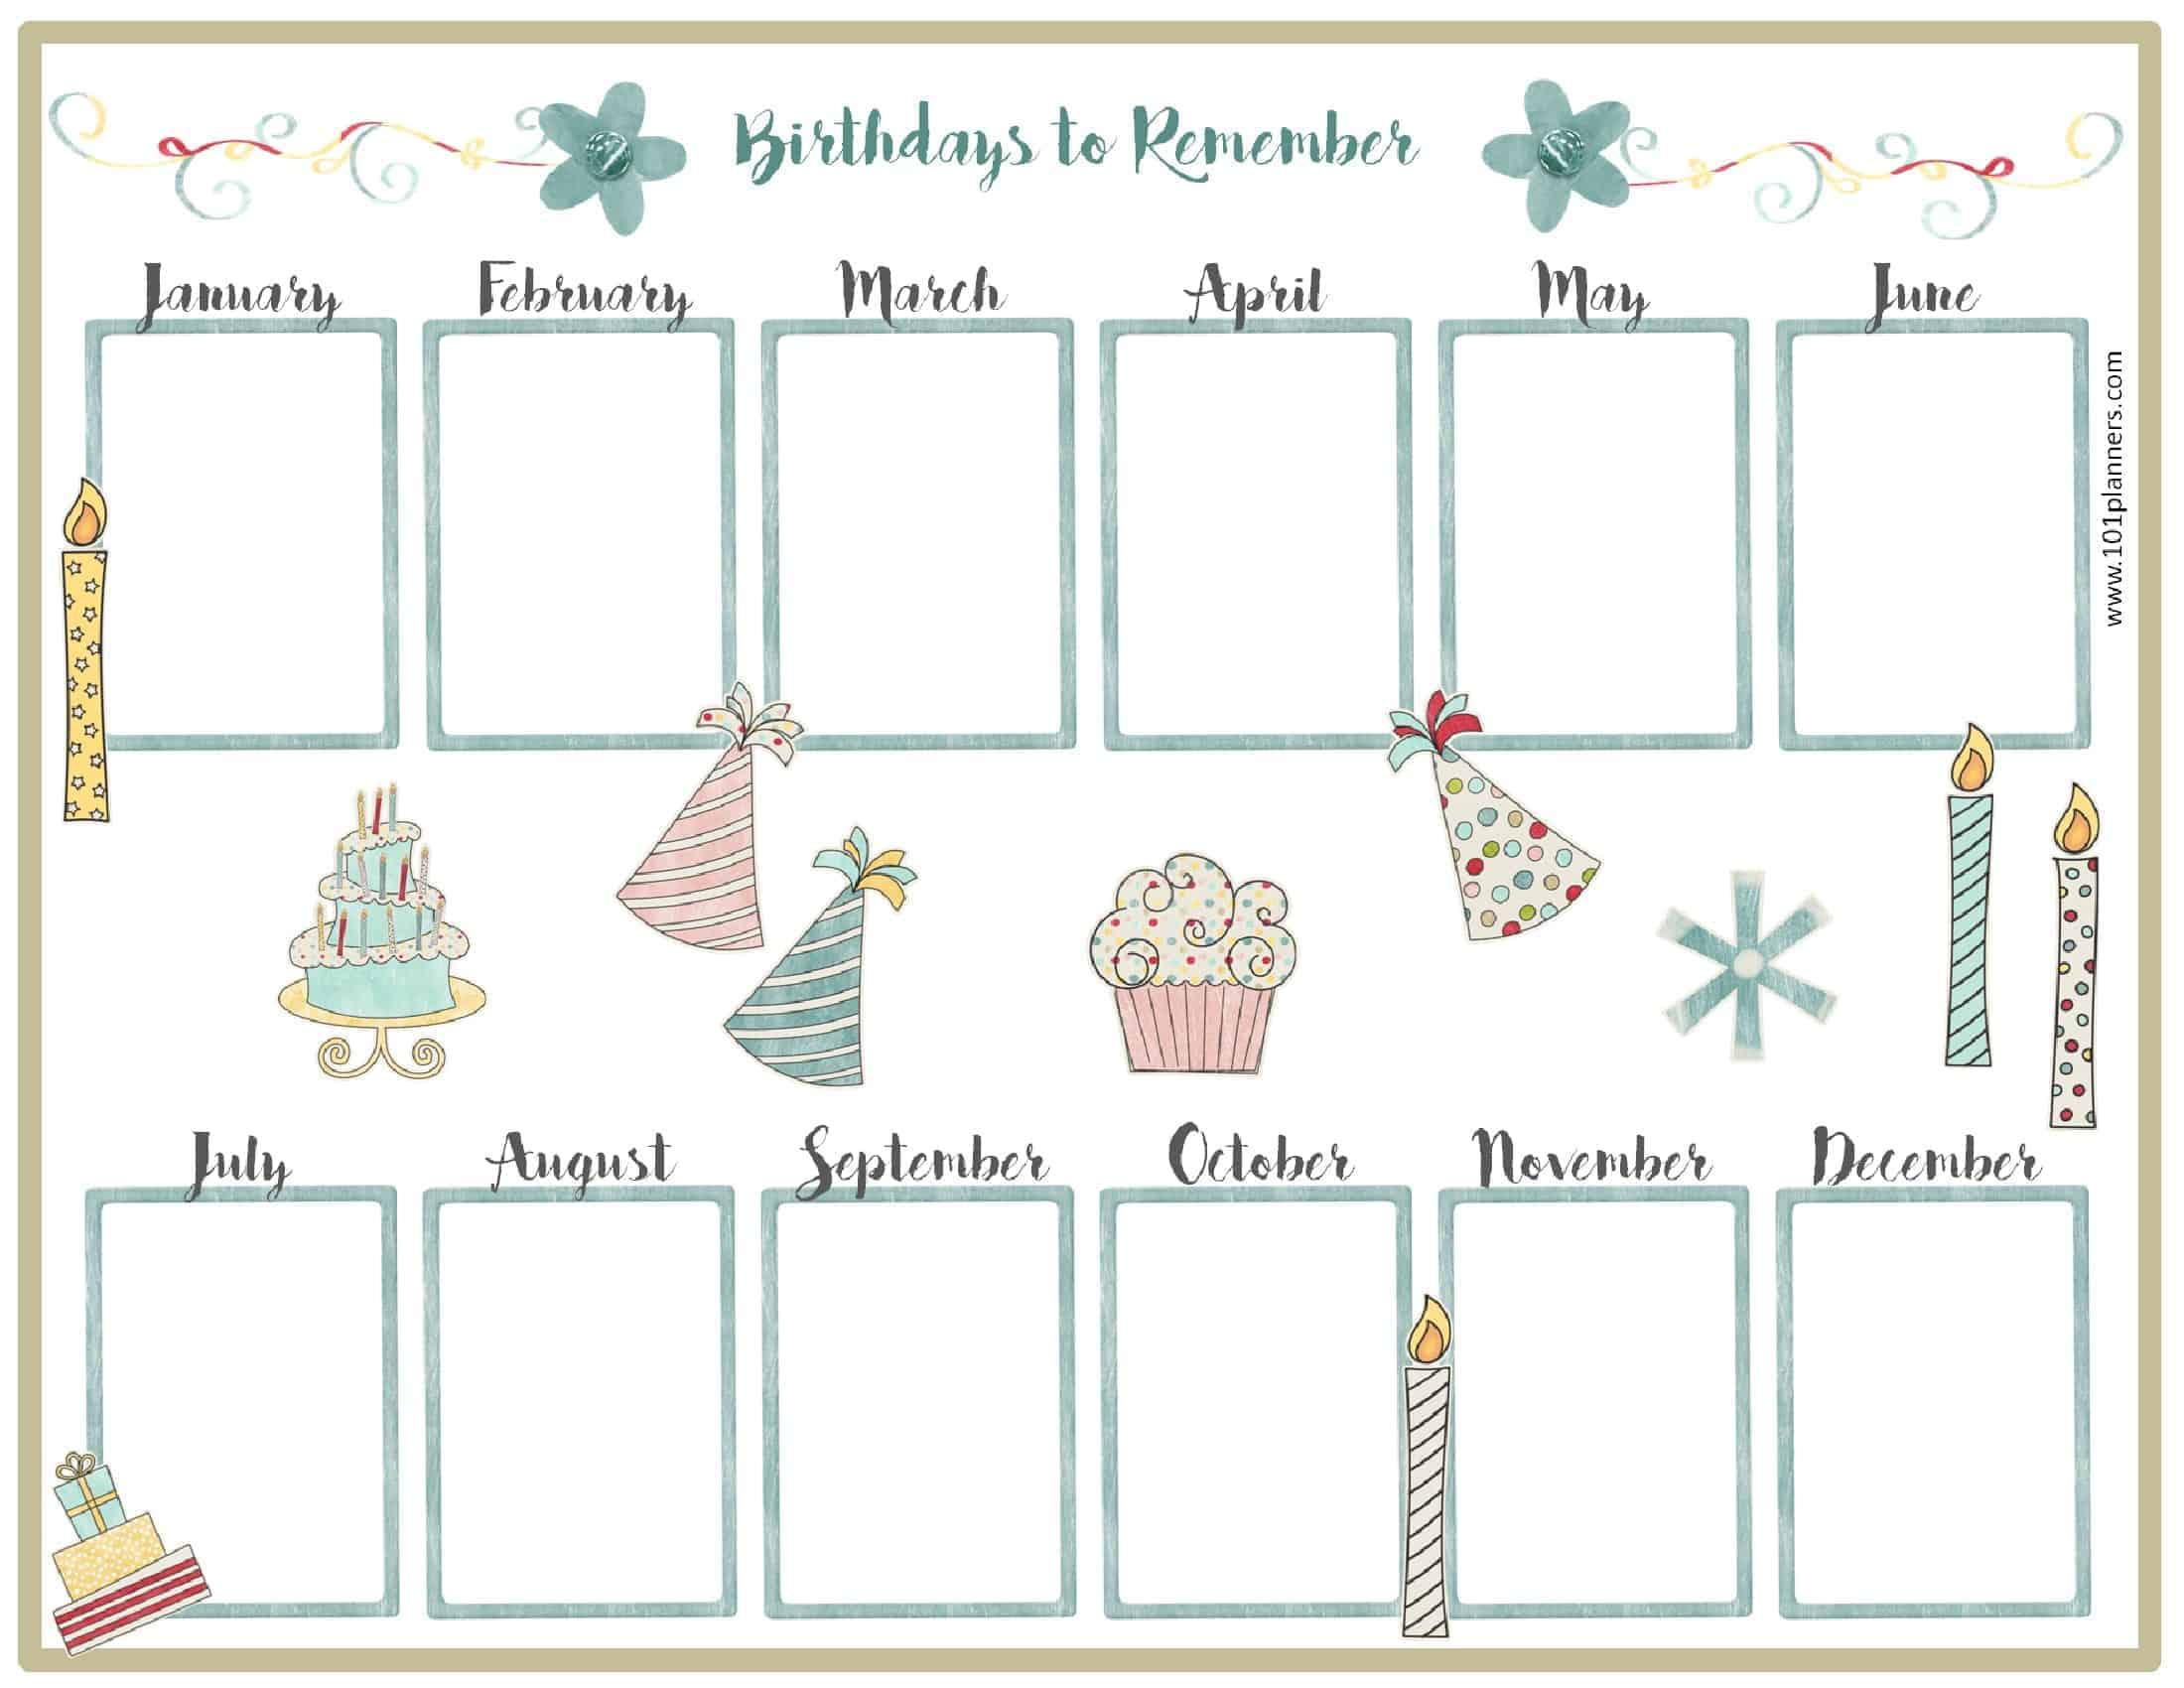 Birthday Calendar In Kindergarten : Free birthday calendar